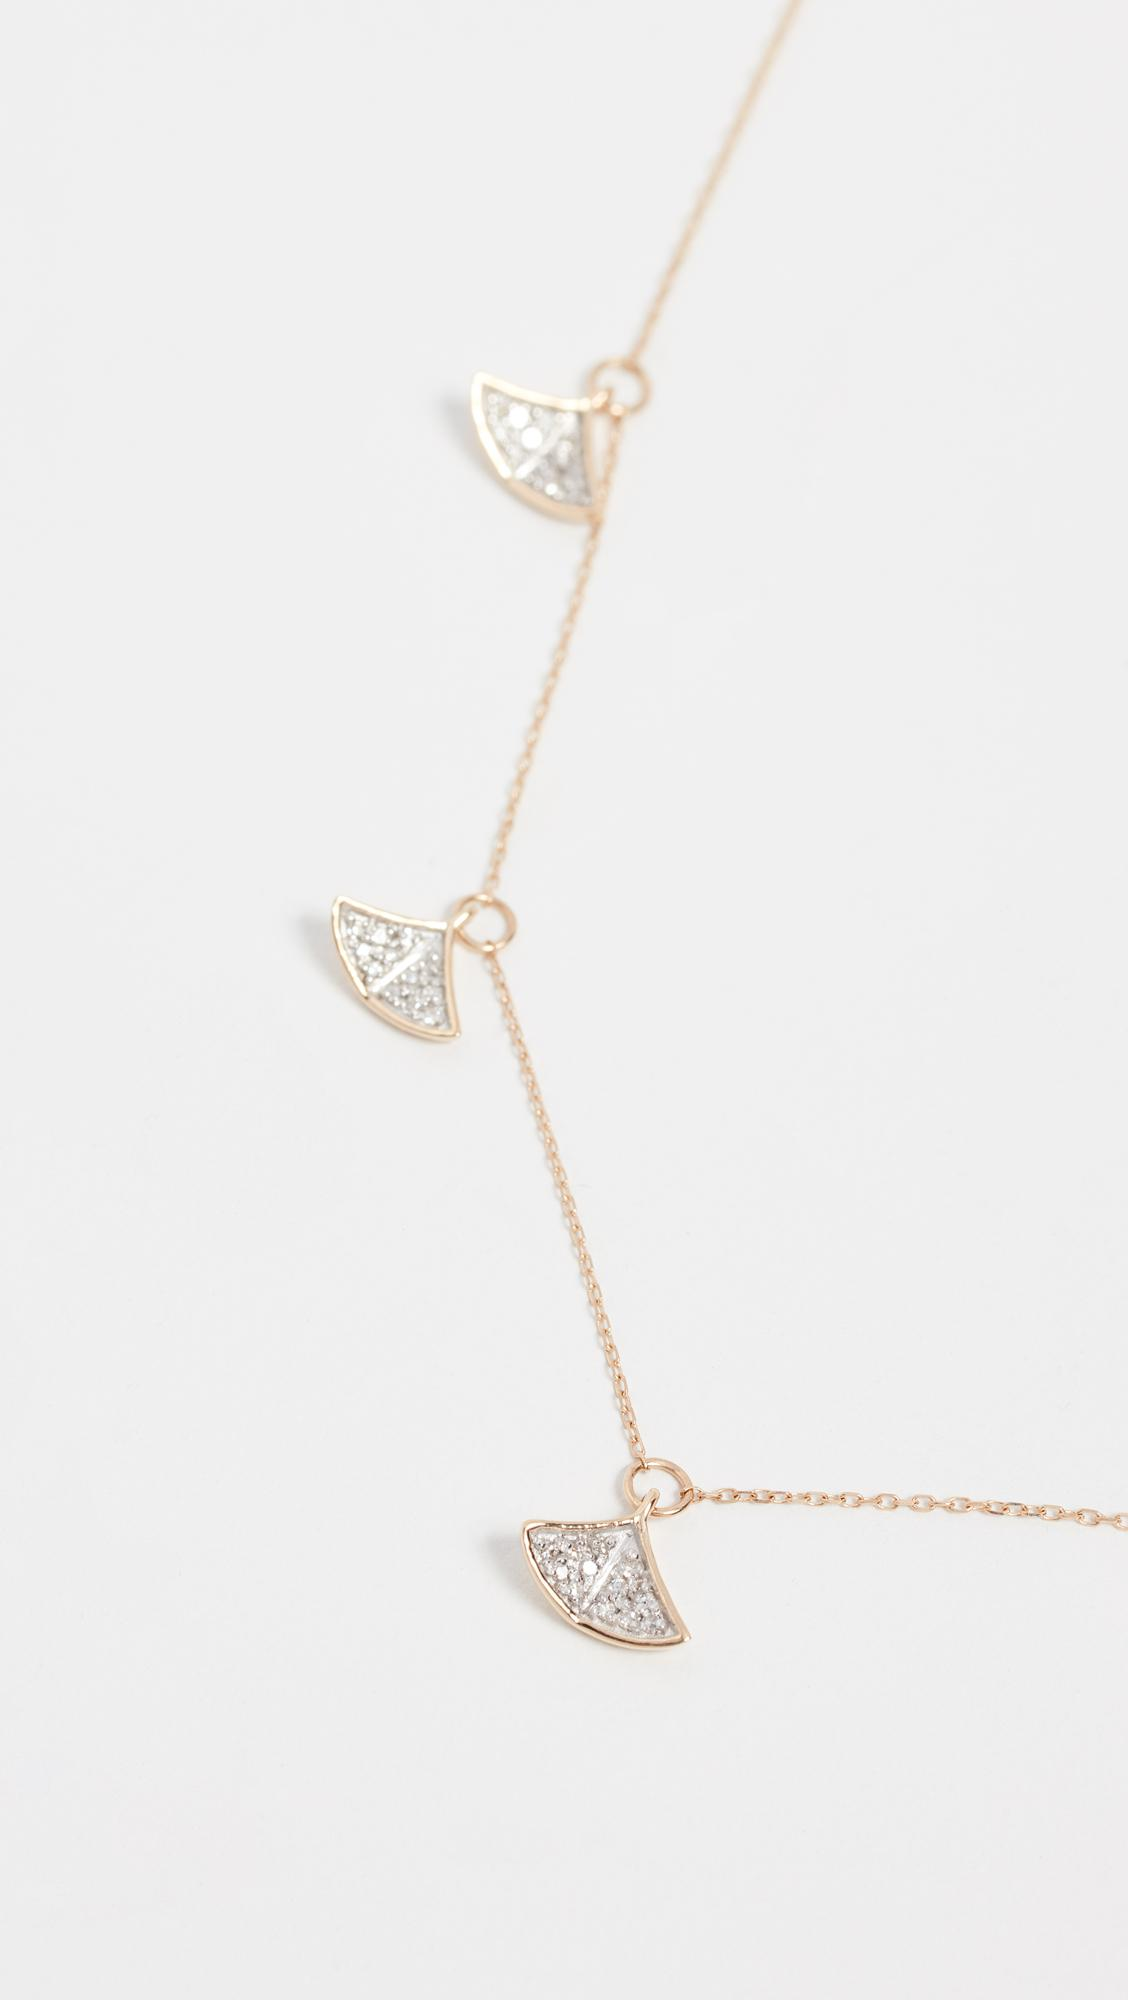 Adina Reyter 14k Gold Pave Folded Fan Necklace in Yellow Gold (Metallic)